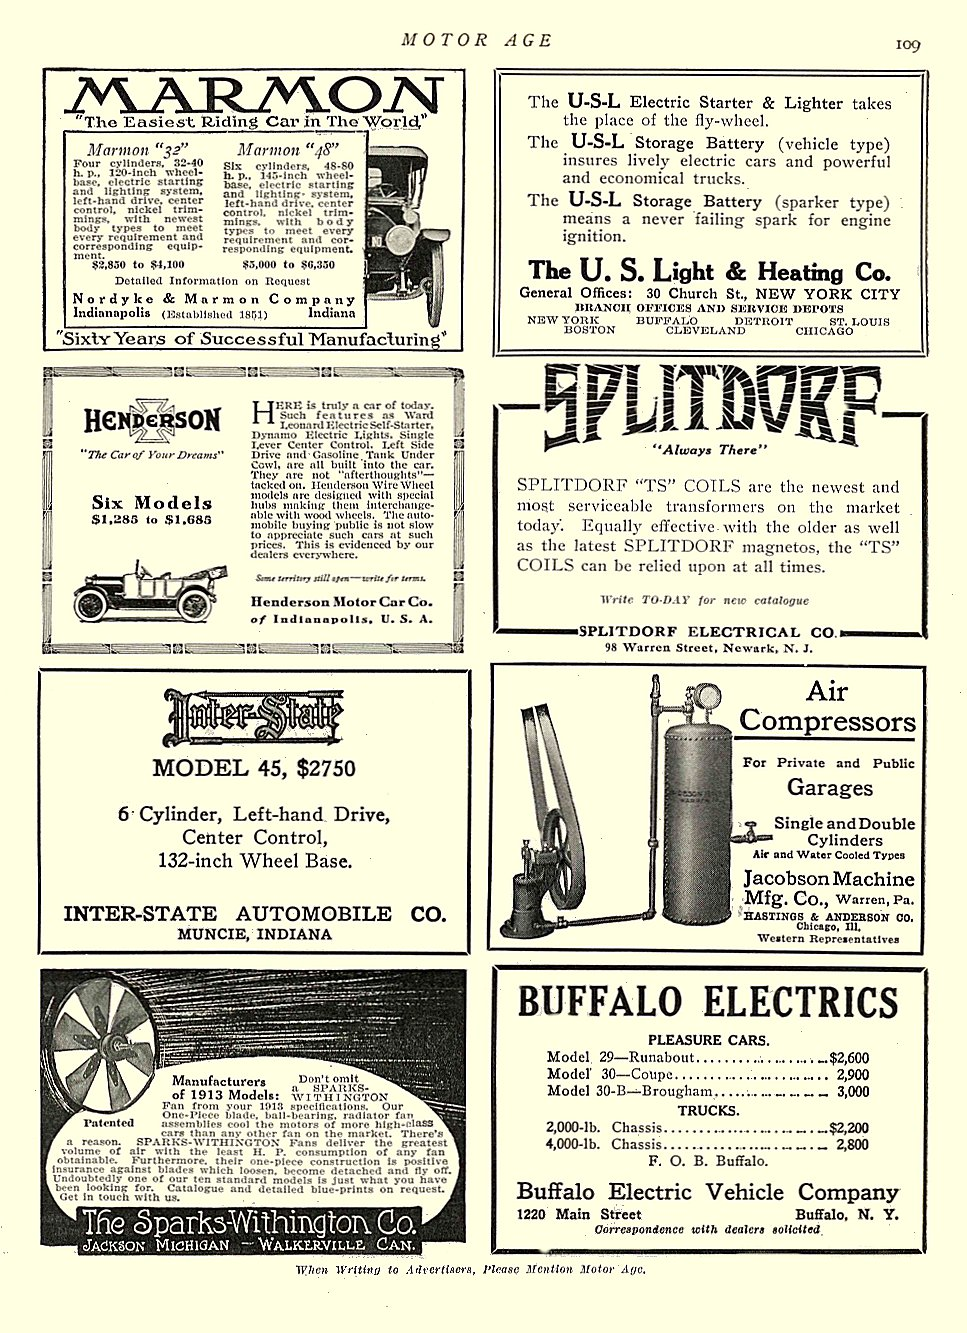 1913 4 10 BUFFALO Electric BUFFALO ELECTRICS MOTOR AGE April 10, 1913 University of Minnesota Library 8.5″x11.5″ page 109